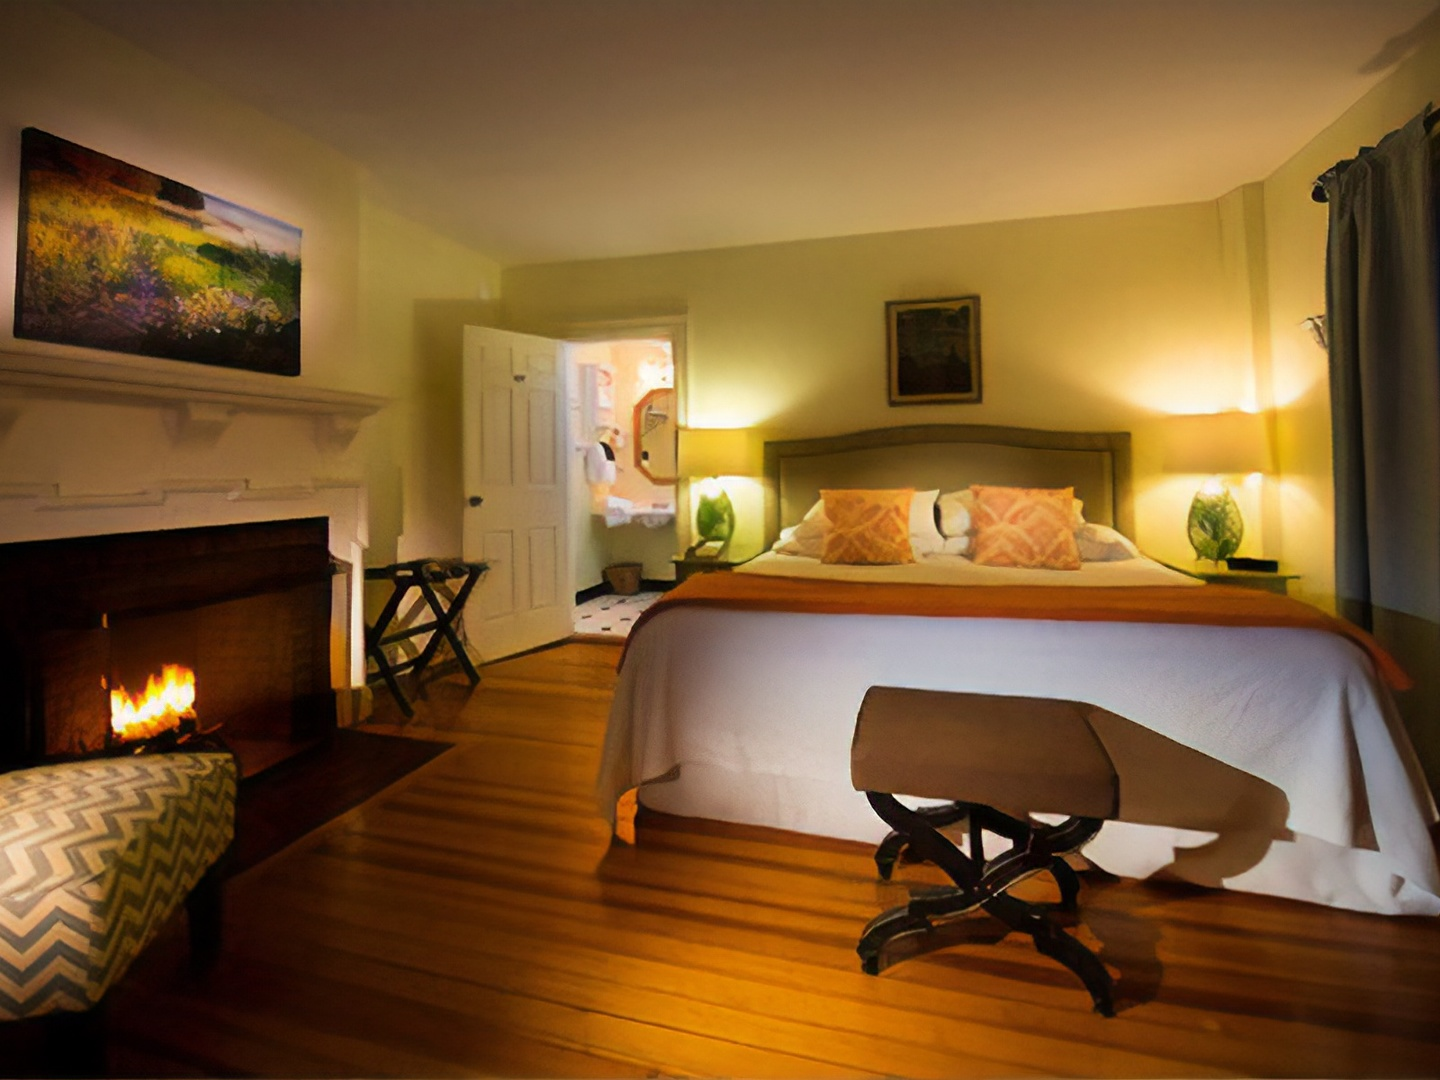 A bedroom with a view of a living room at York Harbor Inn.